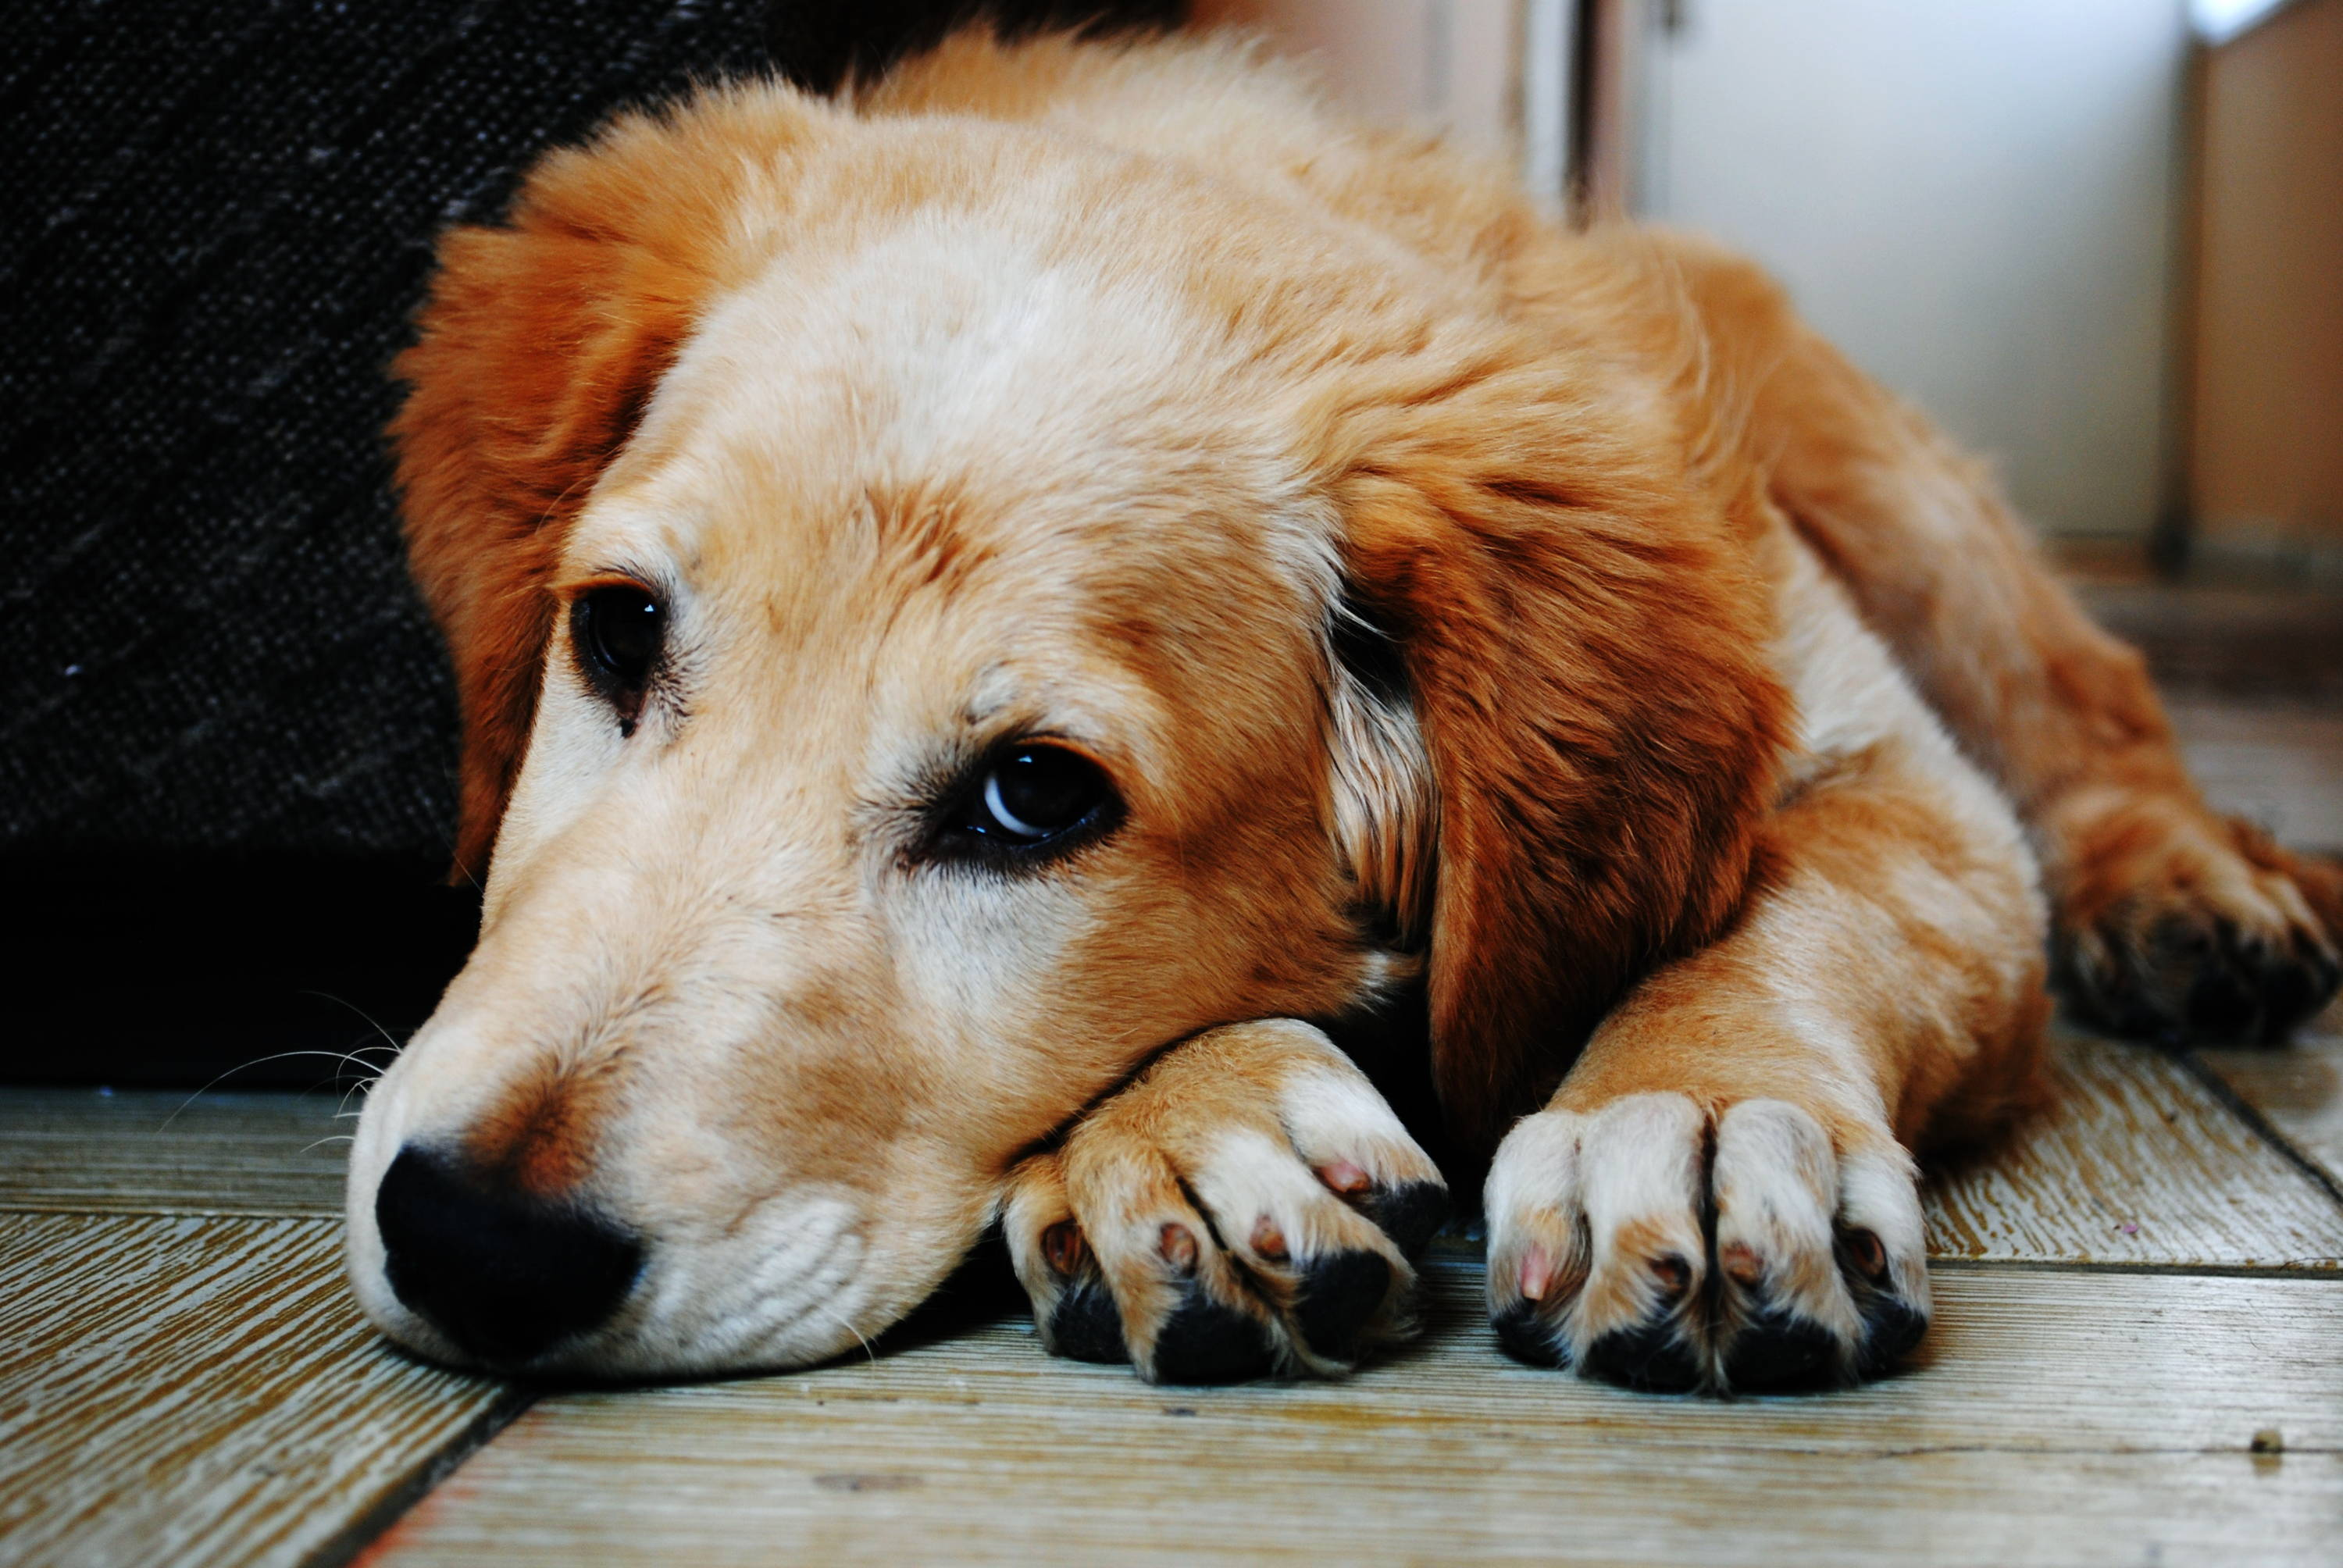 5 Indicators That Your Dog May Be Lonely - Team K9